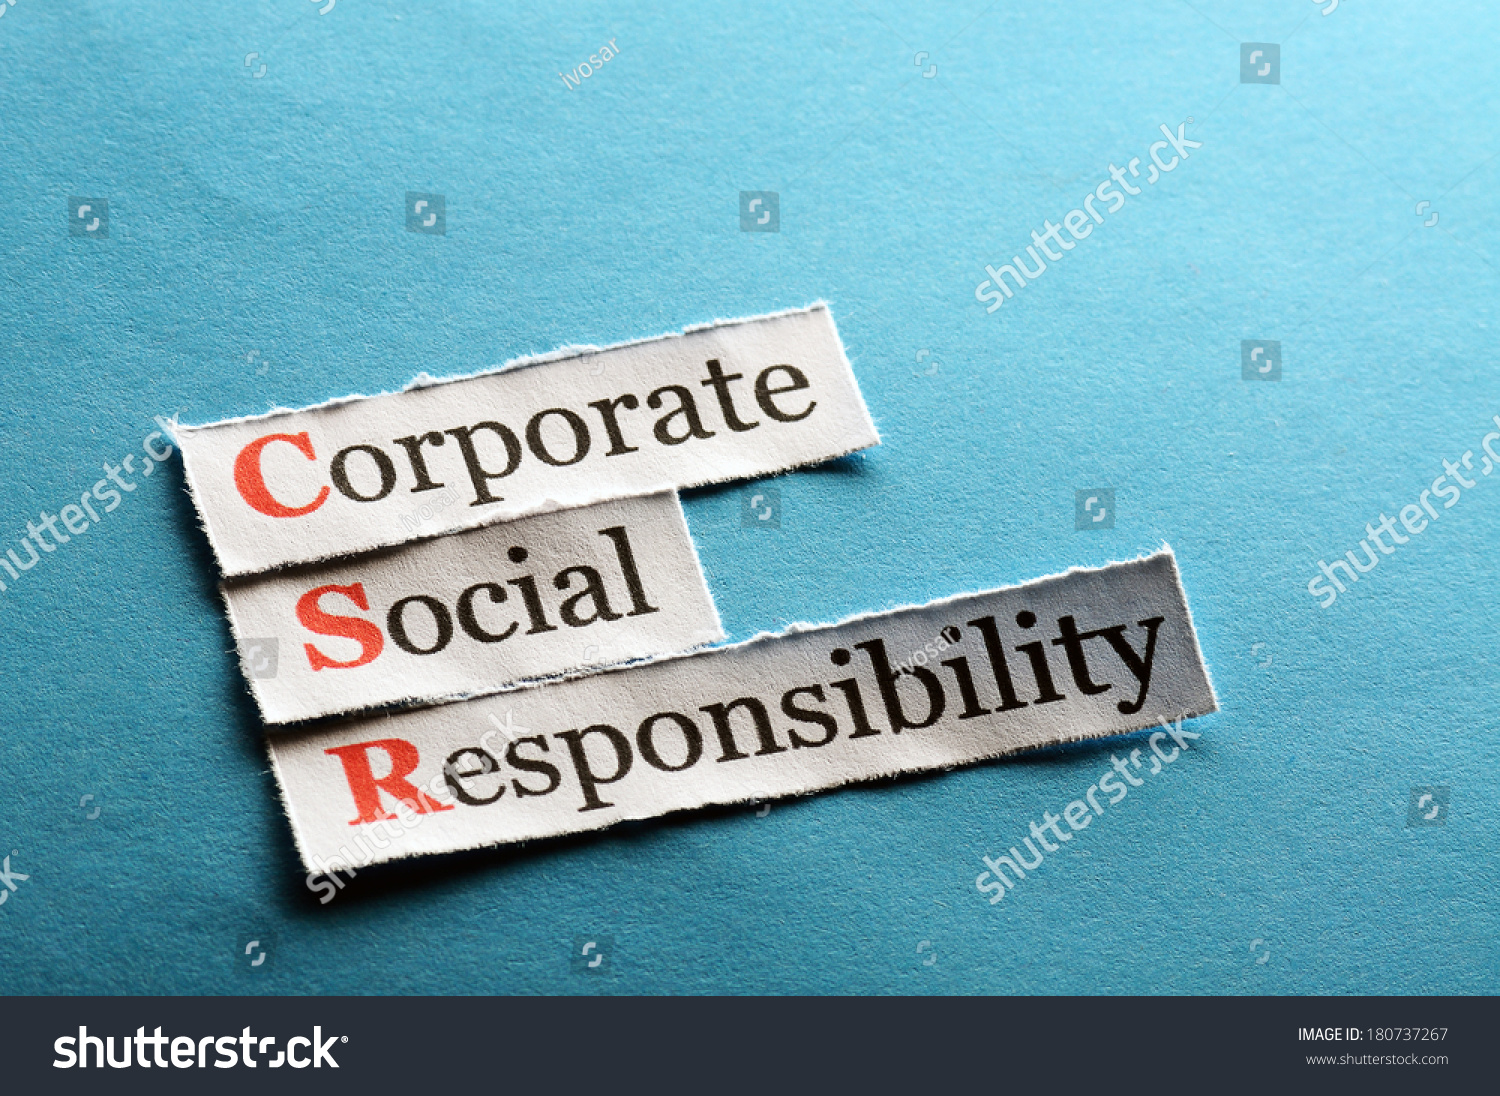 essay on csr making the most of corporate social responsibility  csr essay final project milestone two apple csr reflective essay final project milestone two apple csr corporate social responsibility